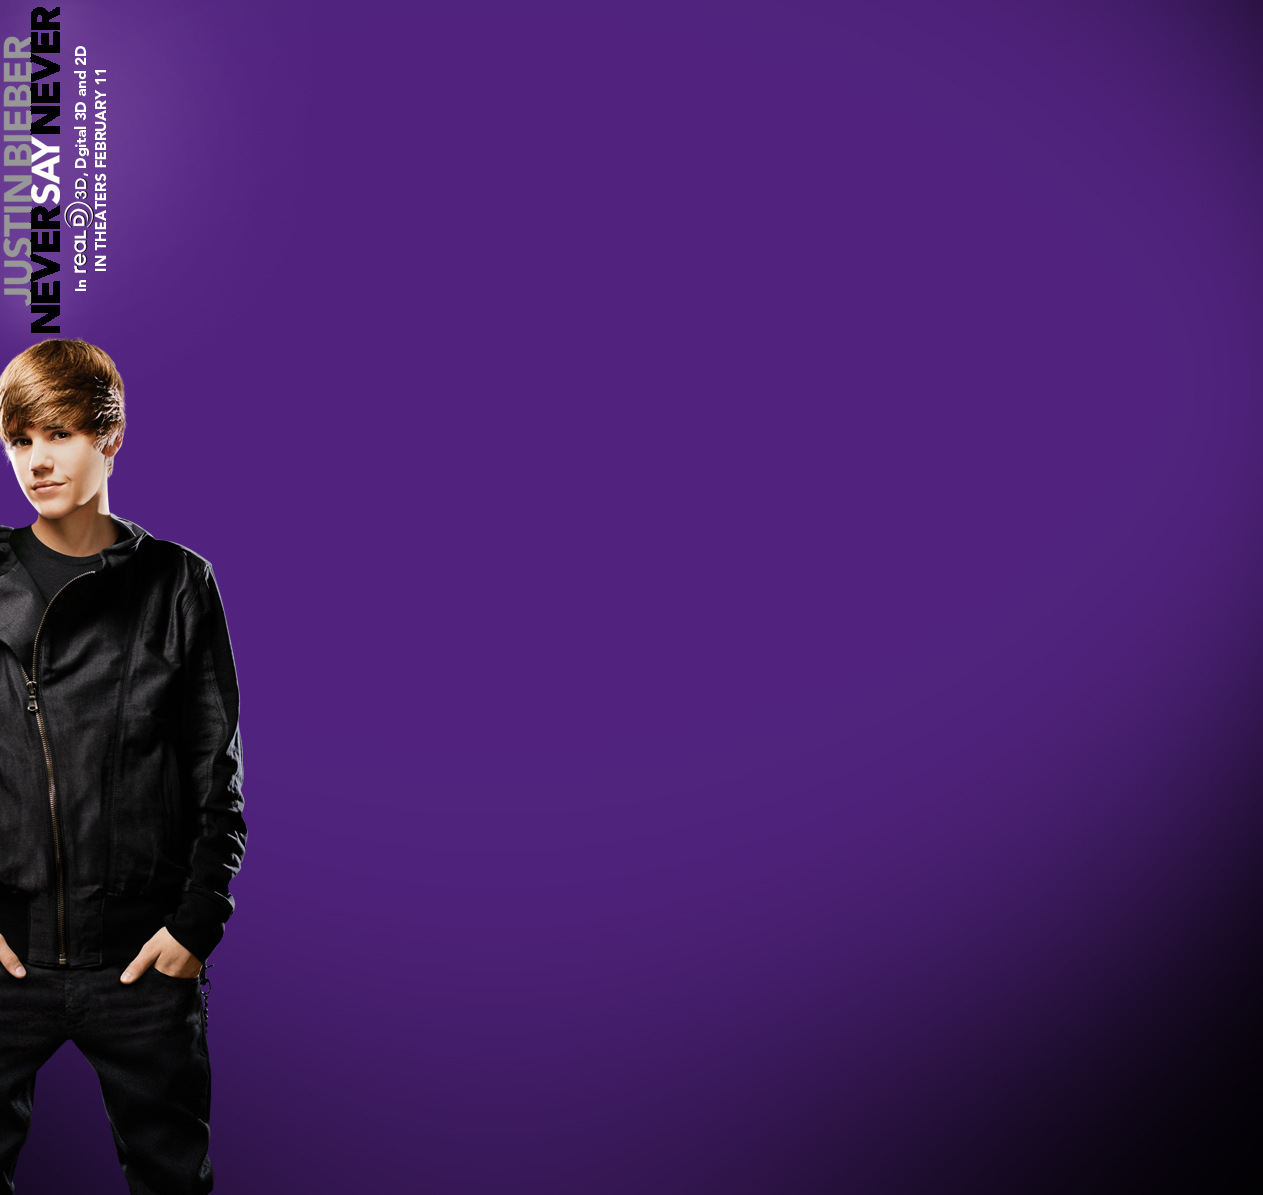 justin bieber never say never free download